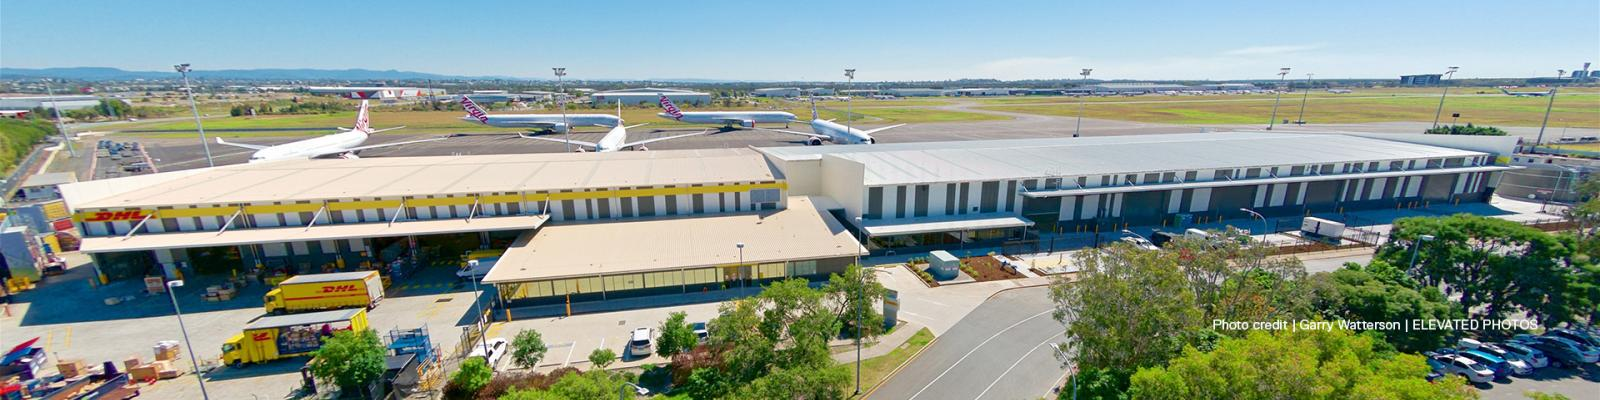 DHL Express Warehouse Expansion Brisbane Airport